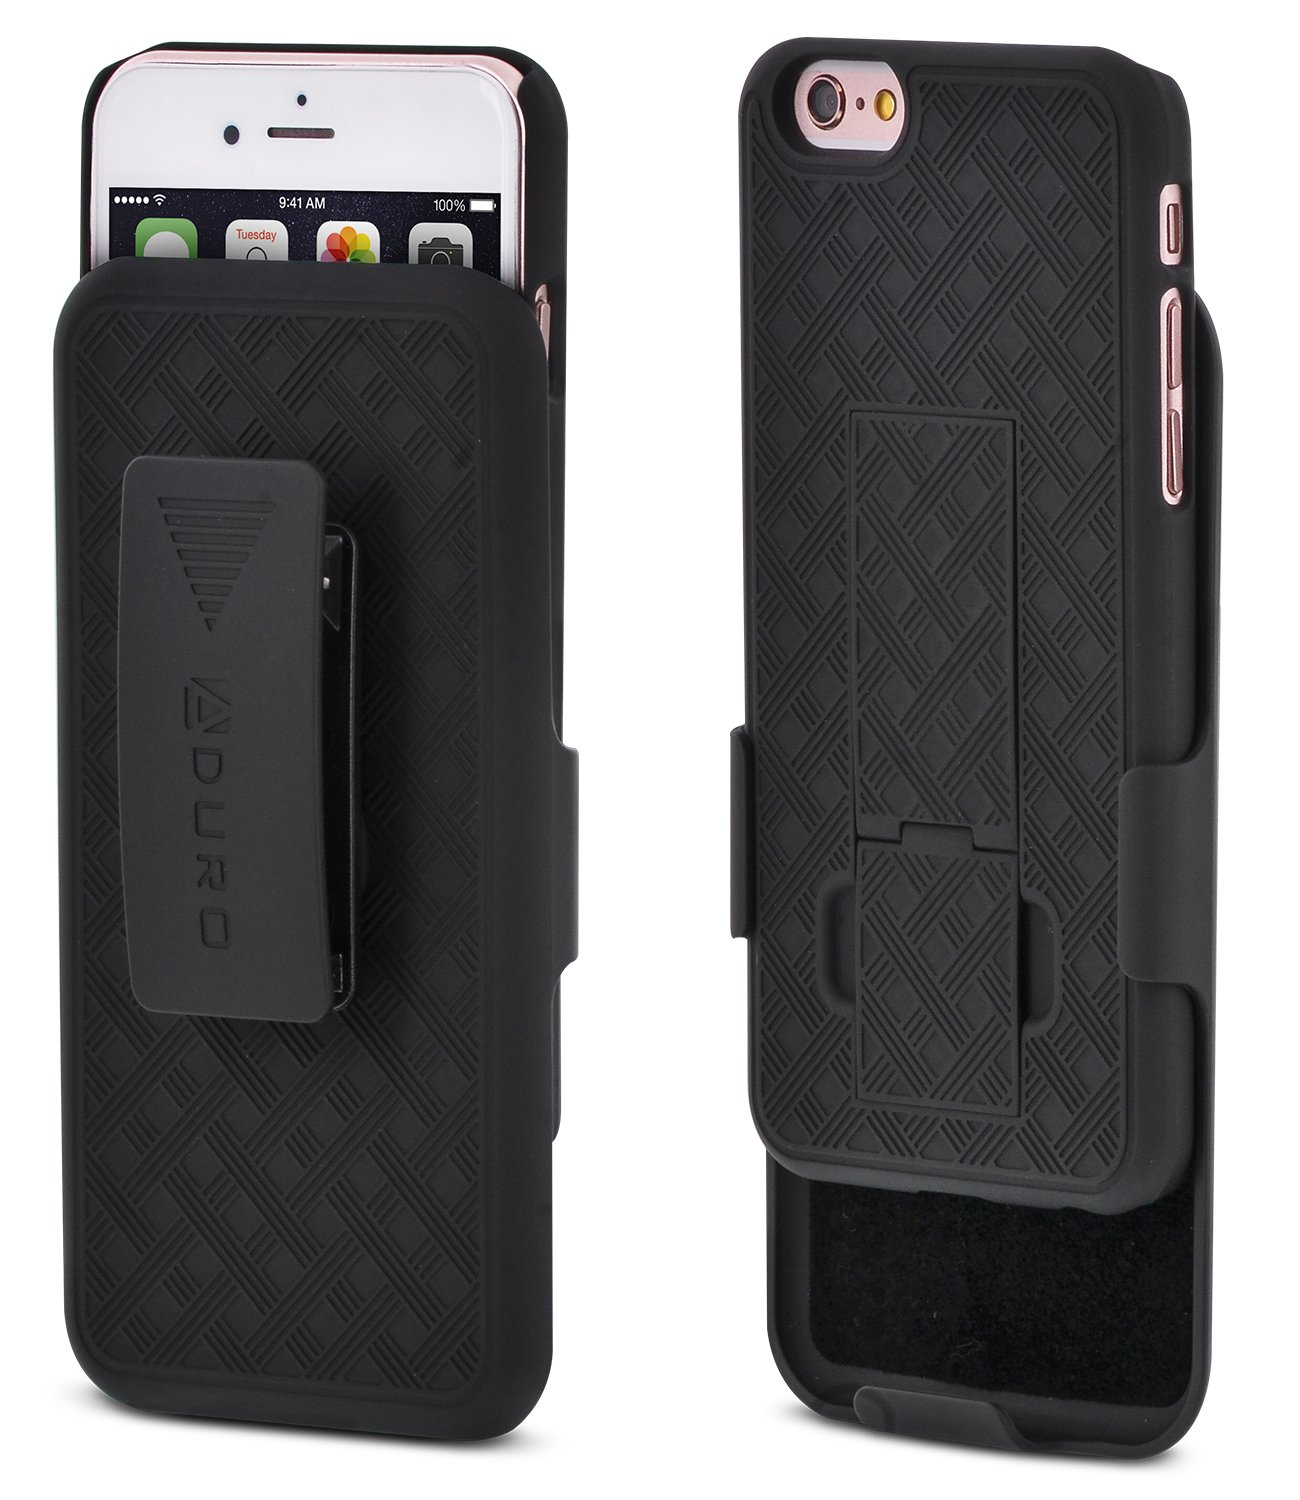 iPhone 6S/6 Case, Aduro COMBO Shell & Holster Case Super Slim Shell Case w/Built-In Kickstand + Swivel Belt Clip Holster for Apple iPhone 6S/6